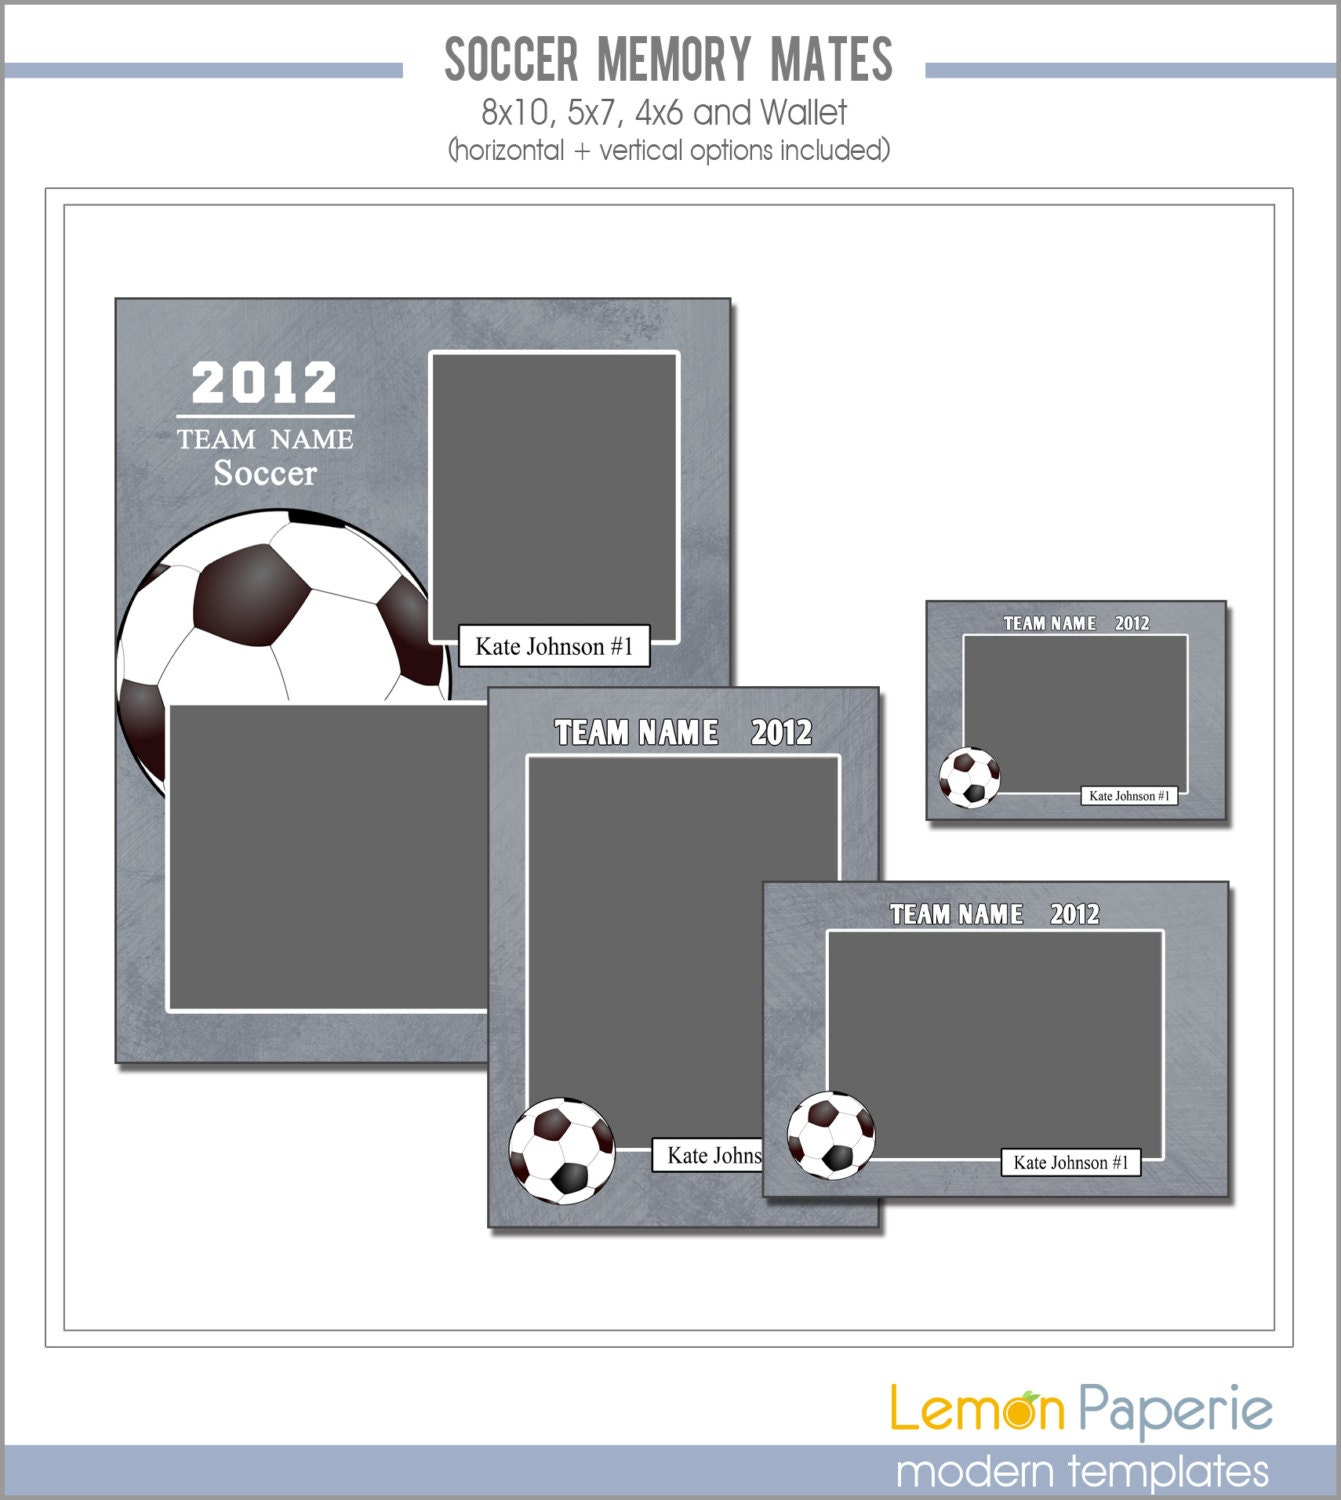 soccer memory mate templates sports template psd photoshop. Black Bedroom Furniture Sets. Home Design Ideas